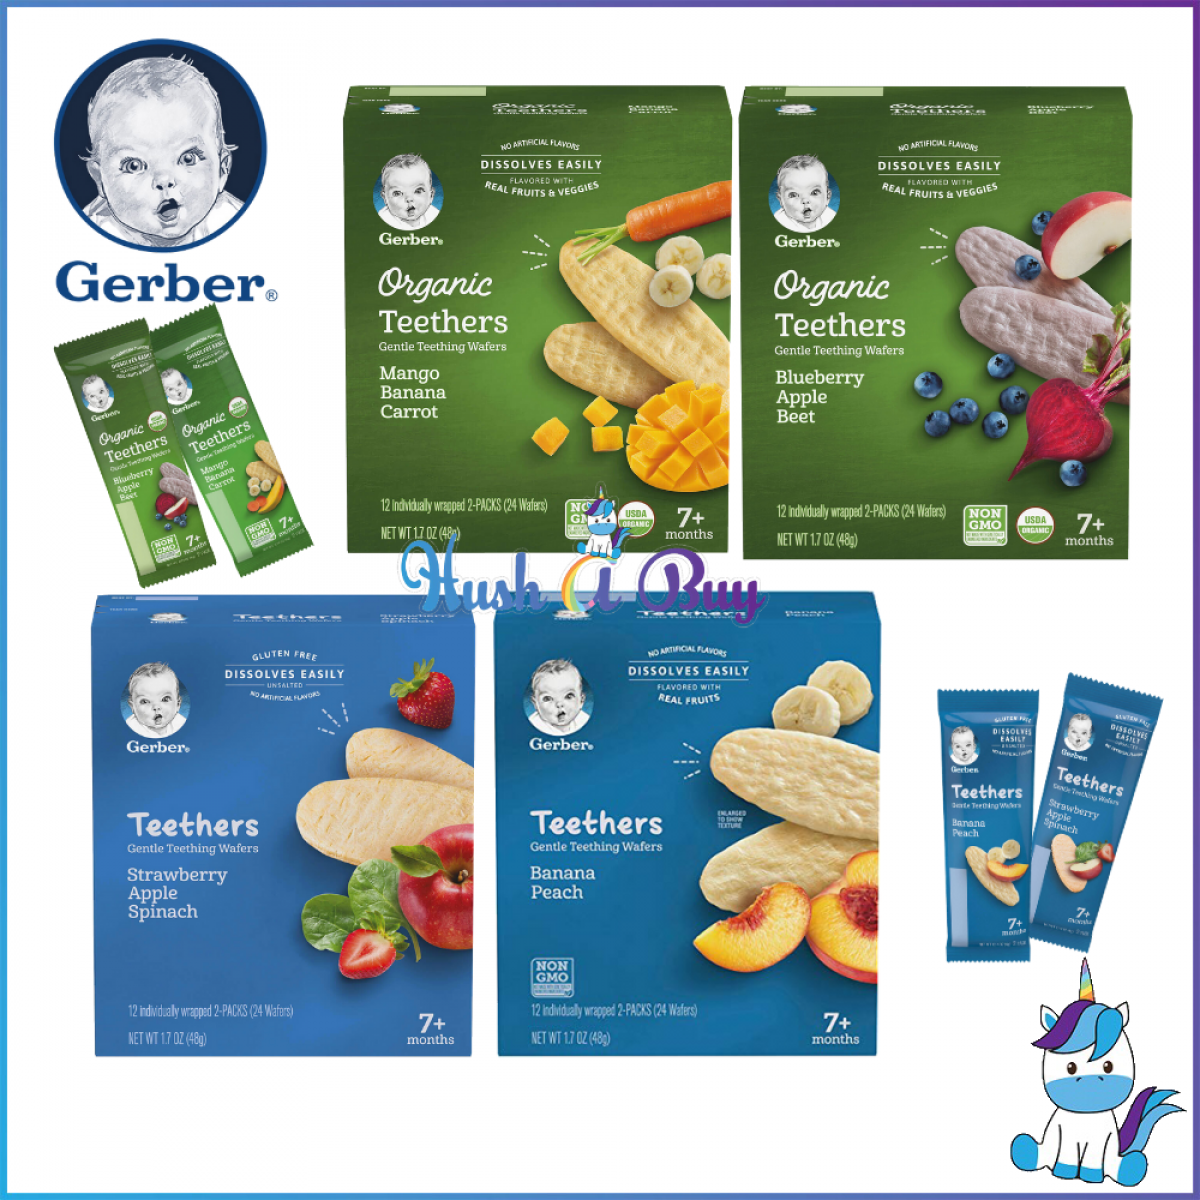 Gerber Organic Teether Gentle Teething Wafers 7+ months